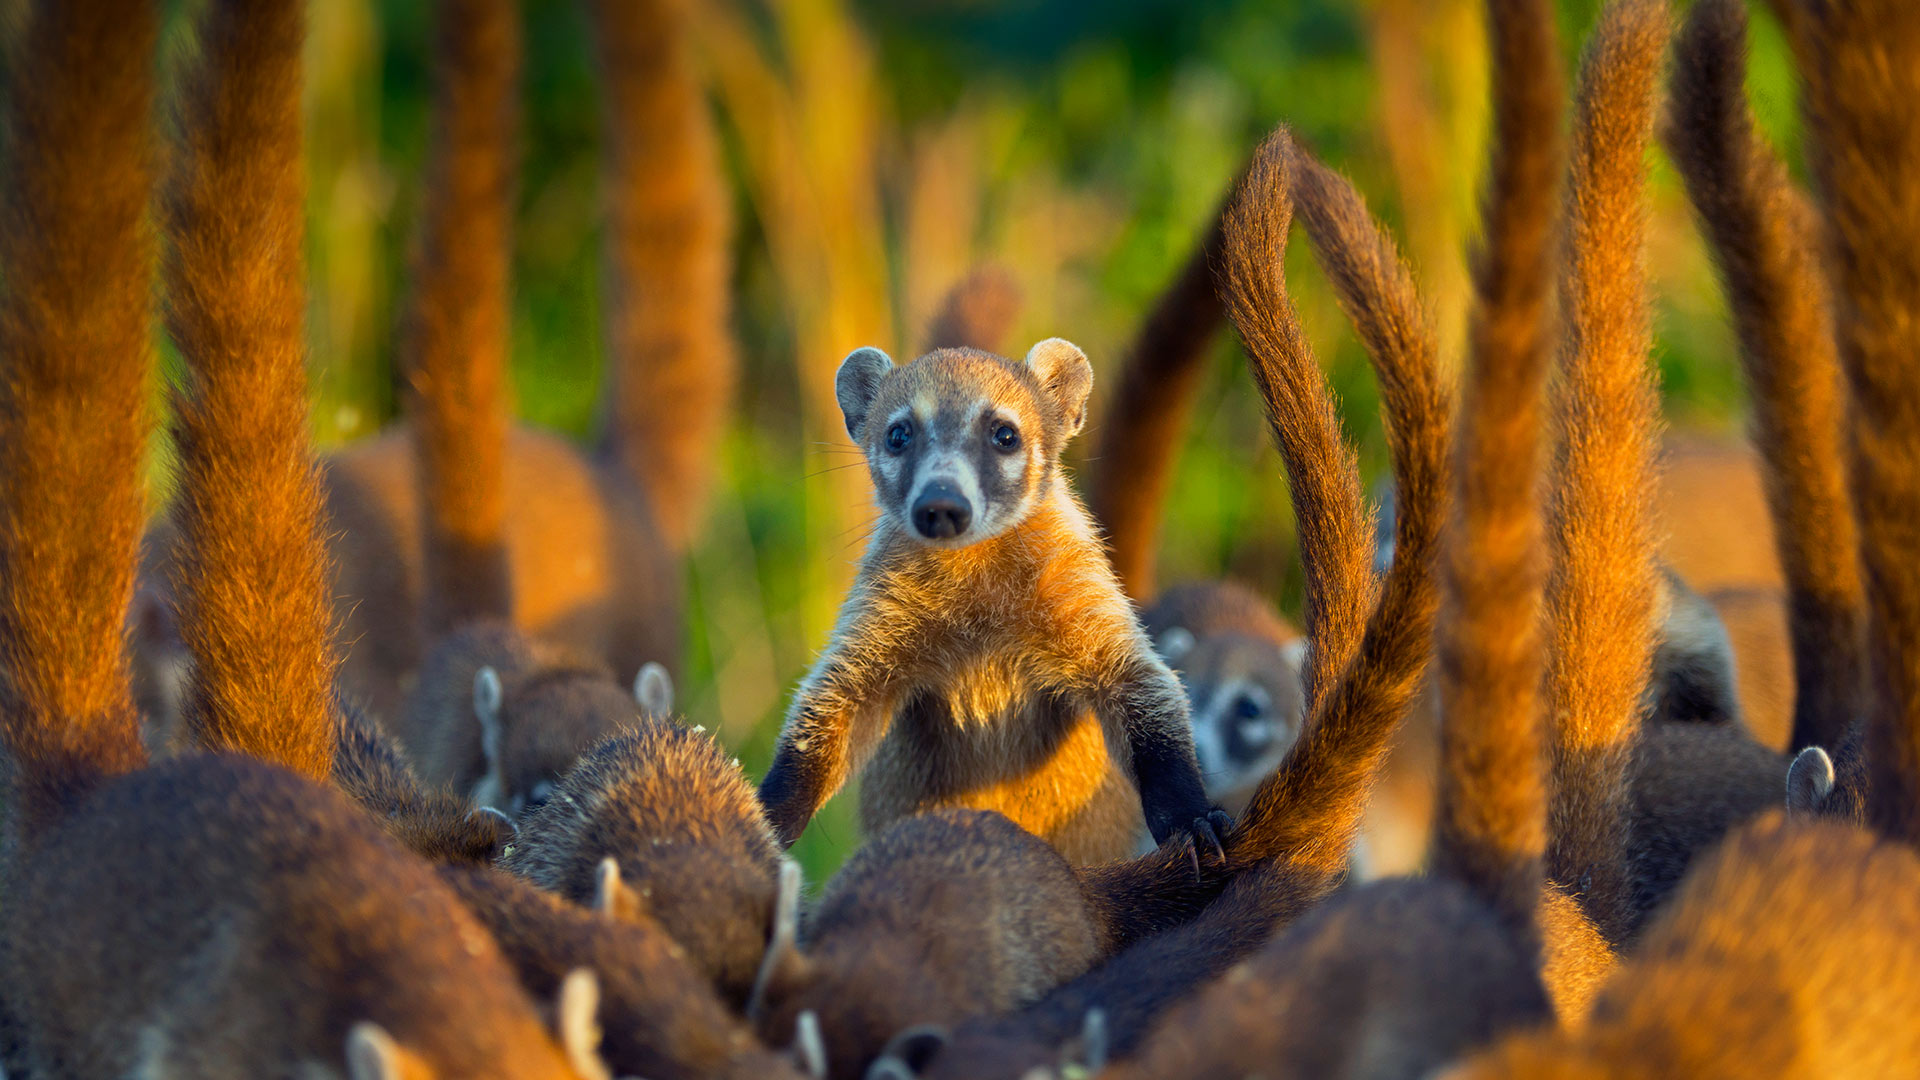 Cozumel Island Coati Bing Wallpaper Download 1920x1080